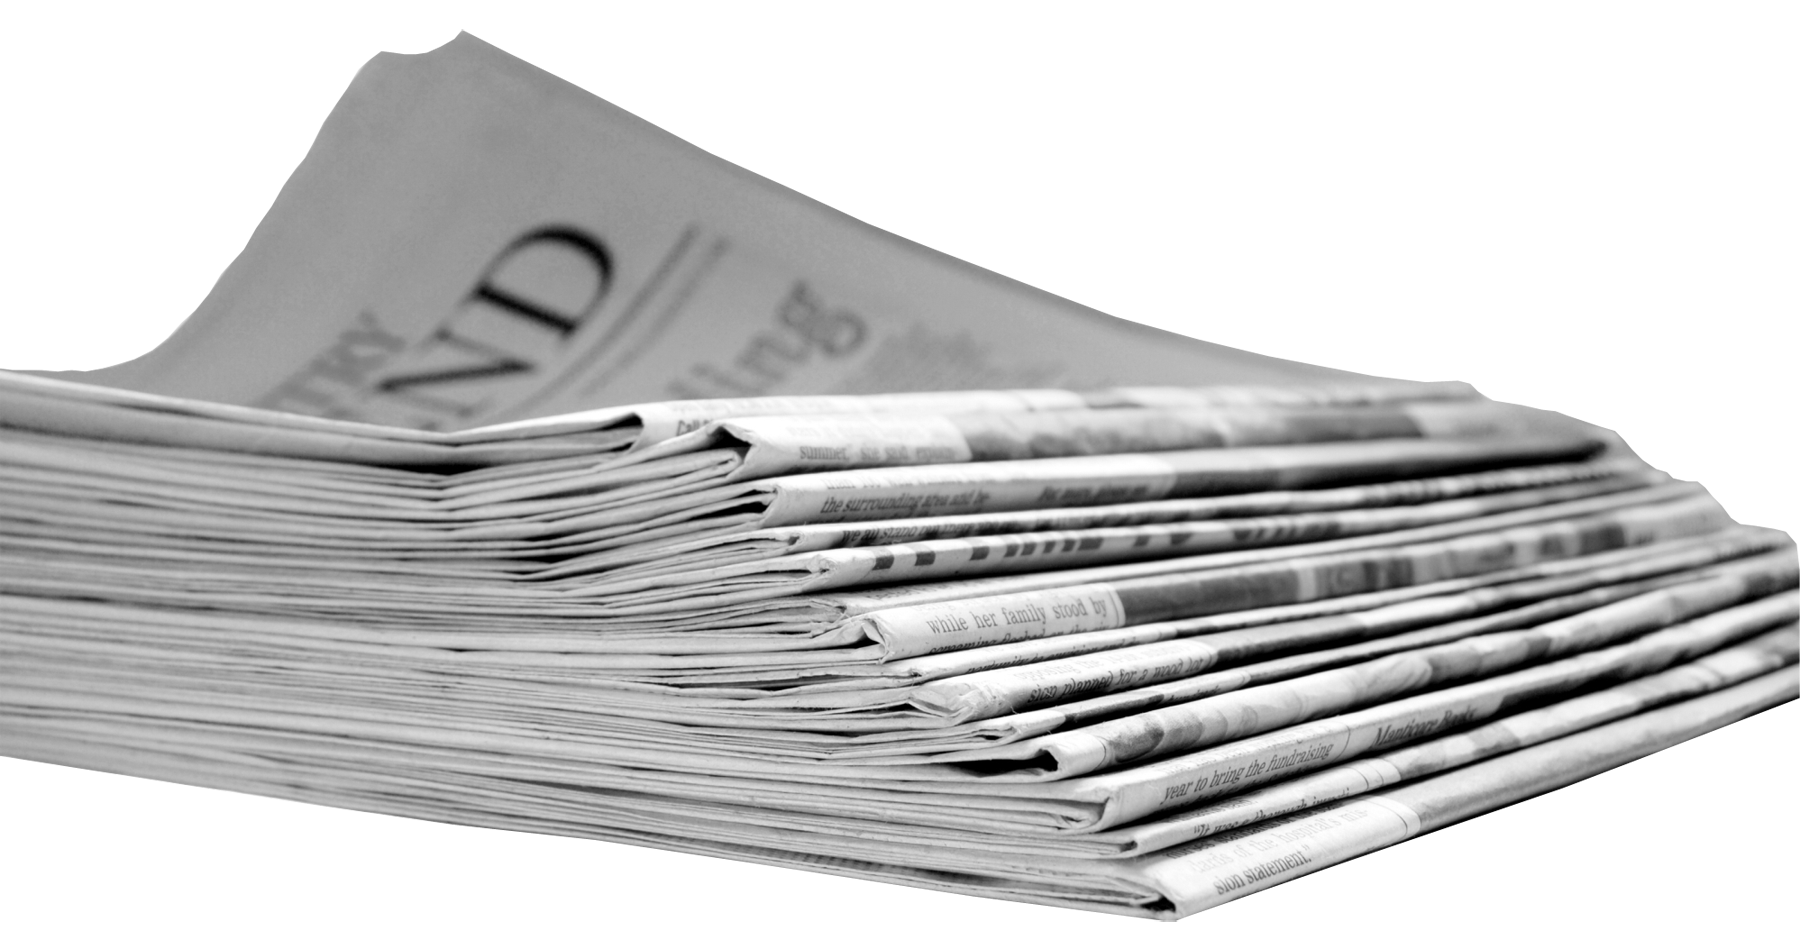 Clipart paper stack papers. Newspaper png transparent images